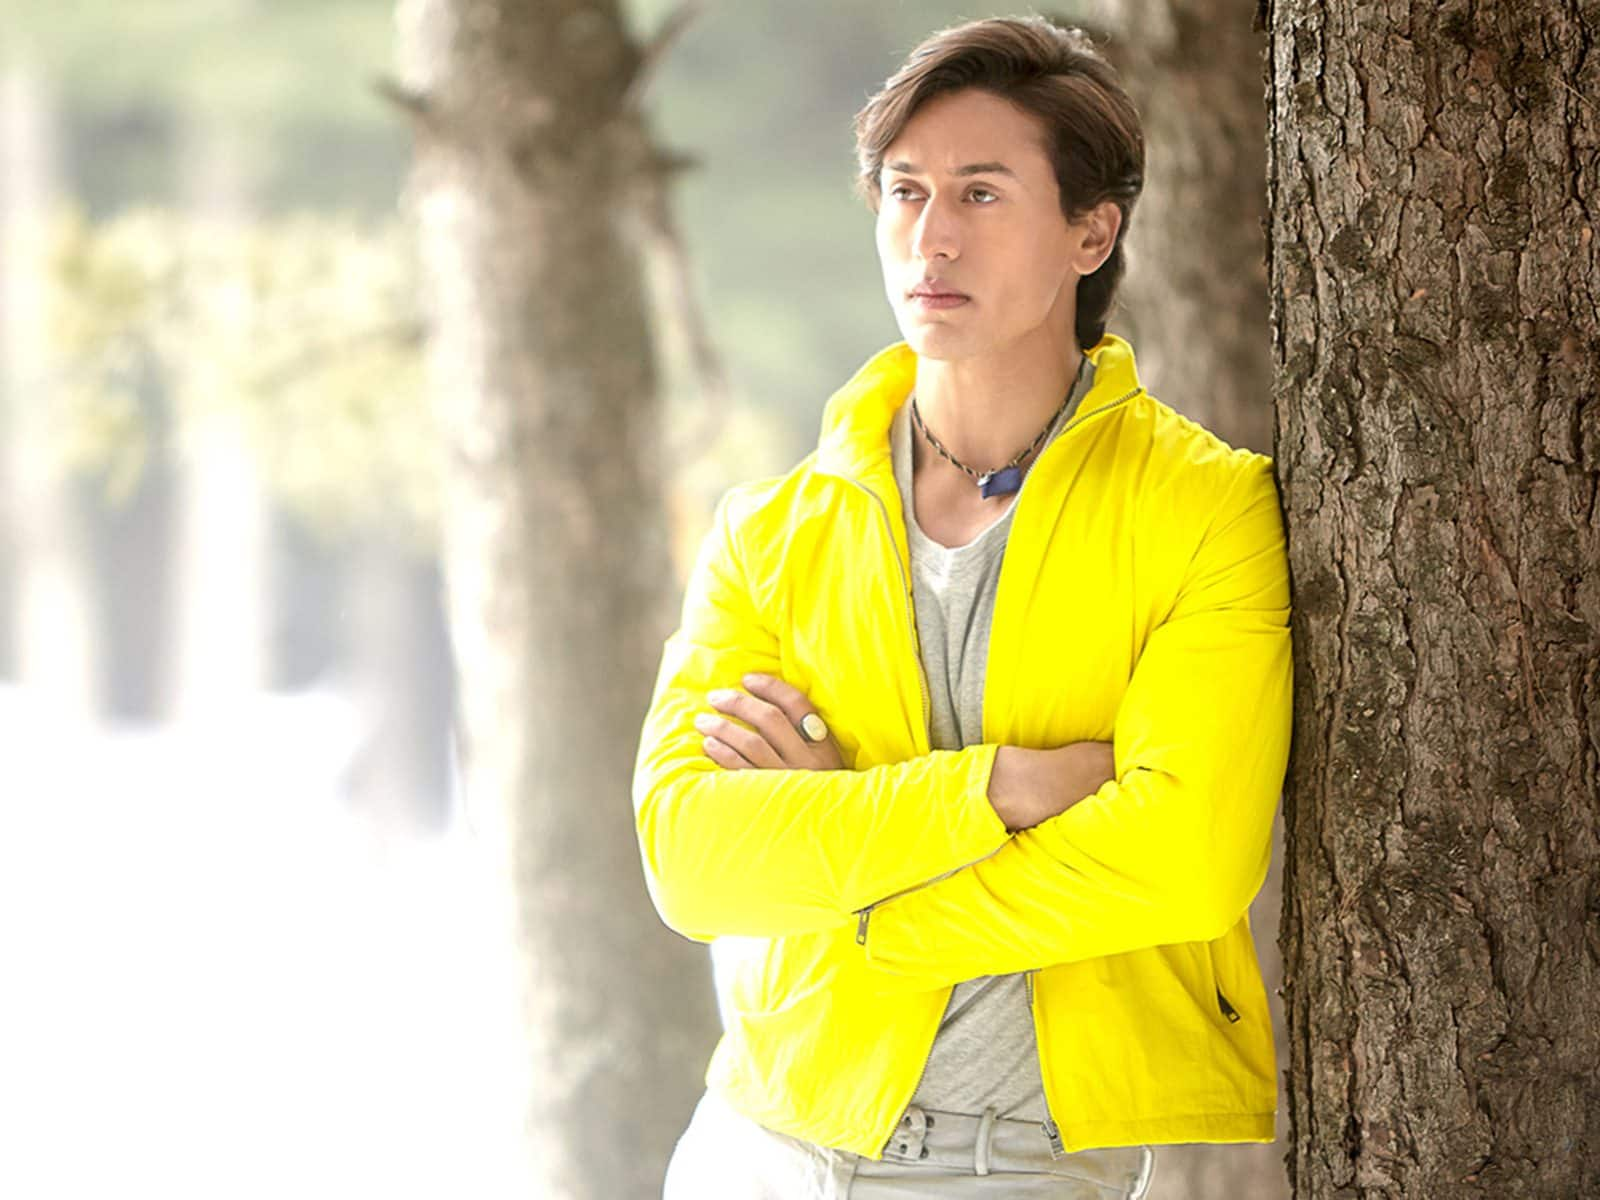 Why Tiger Shroff Became a Sensation While Vidyut Jamwal Fizzled Out